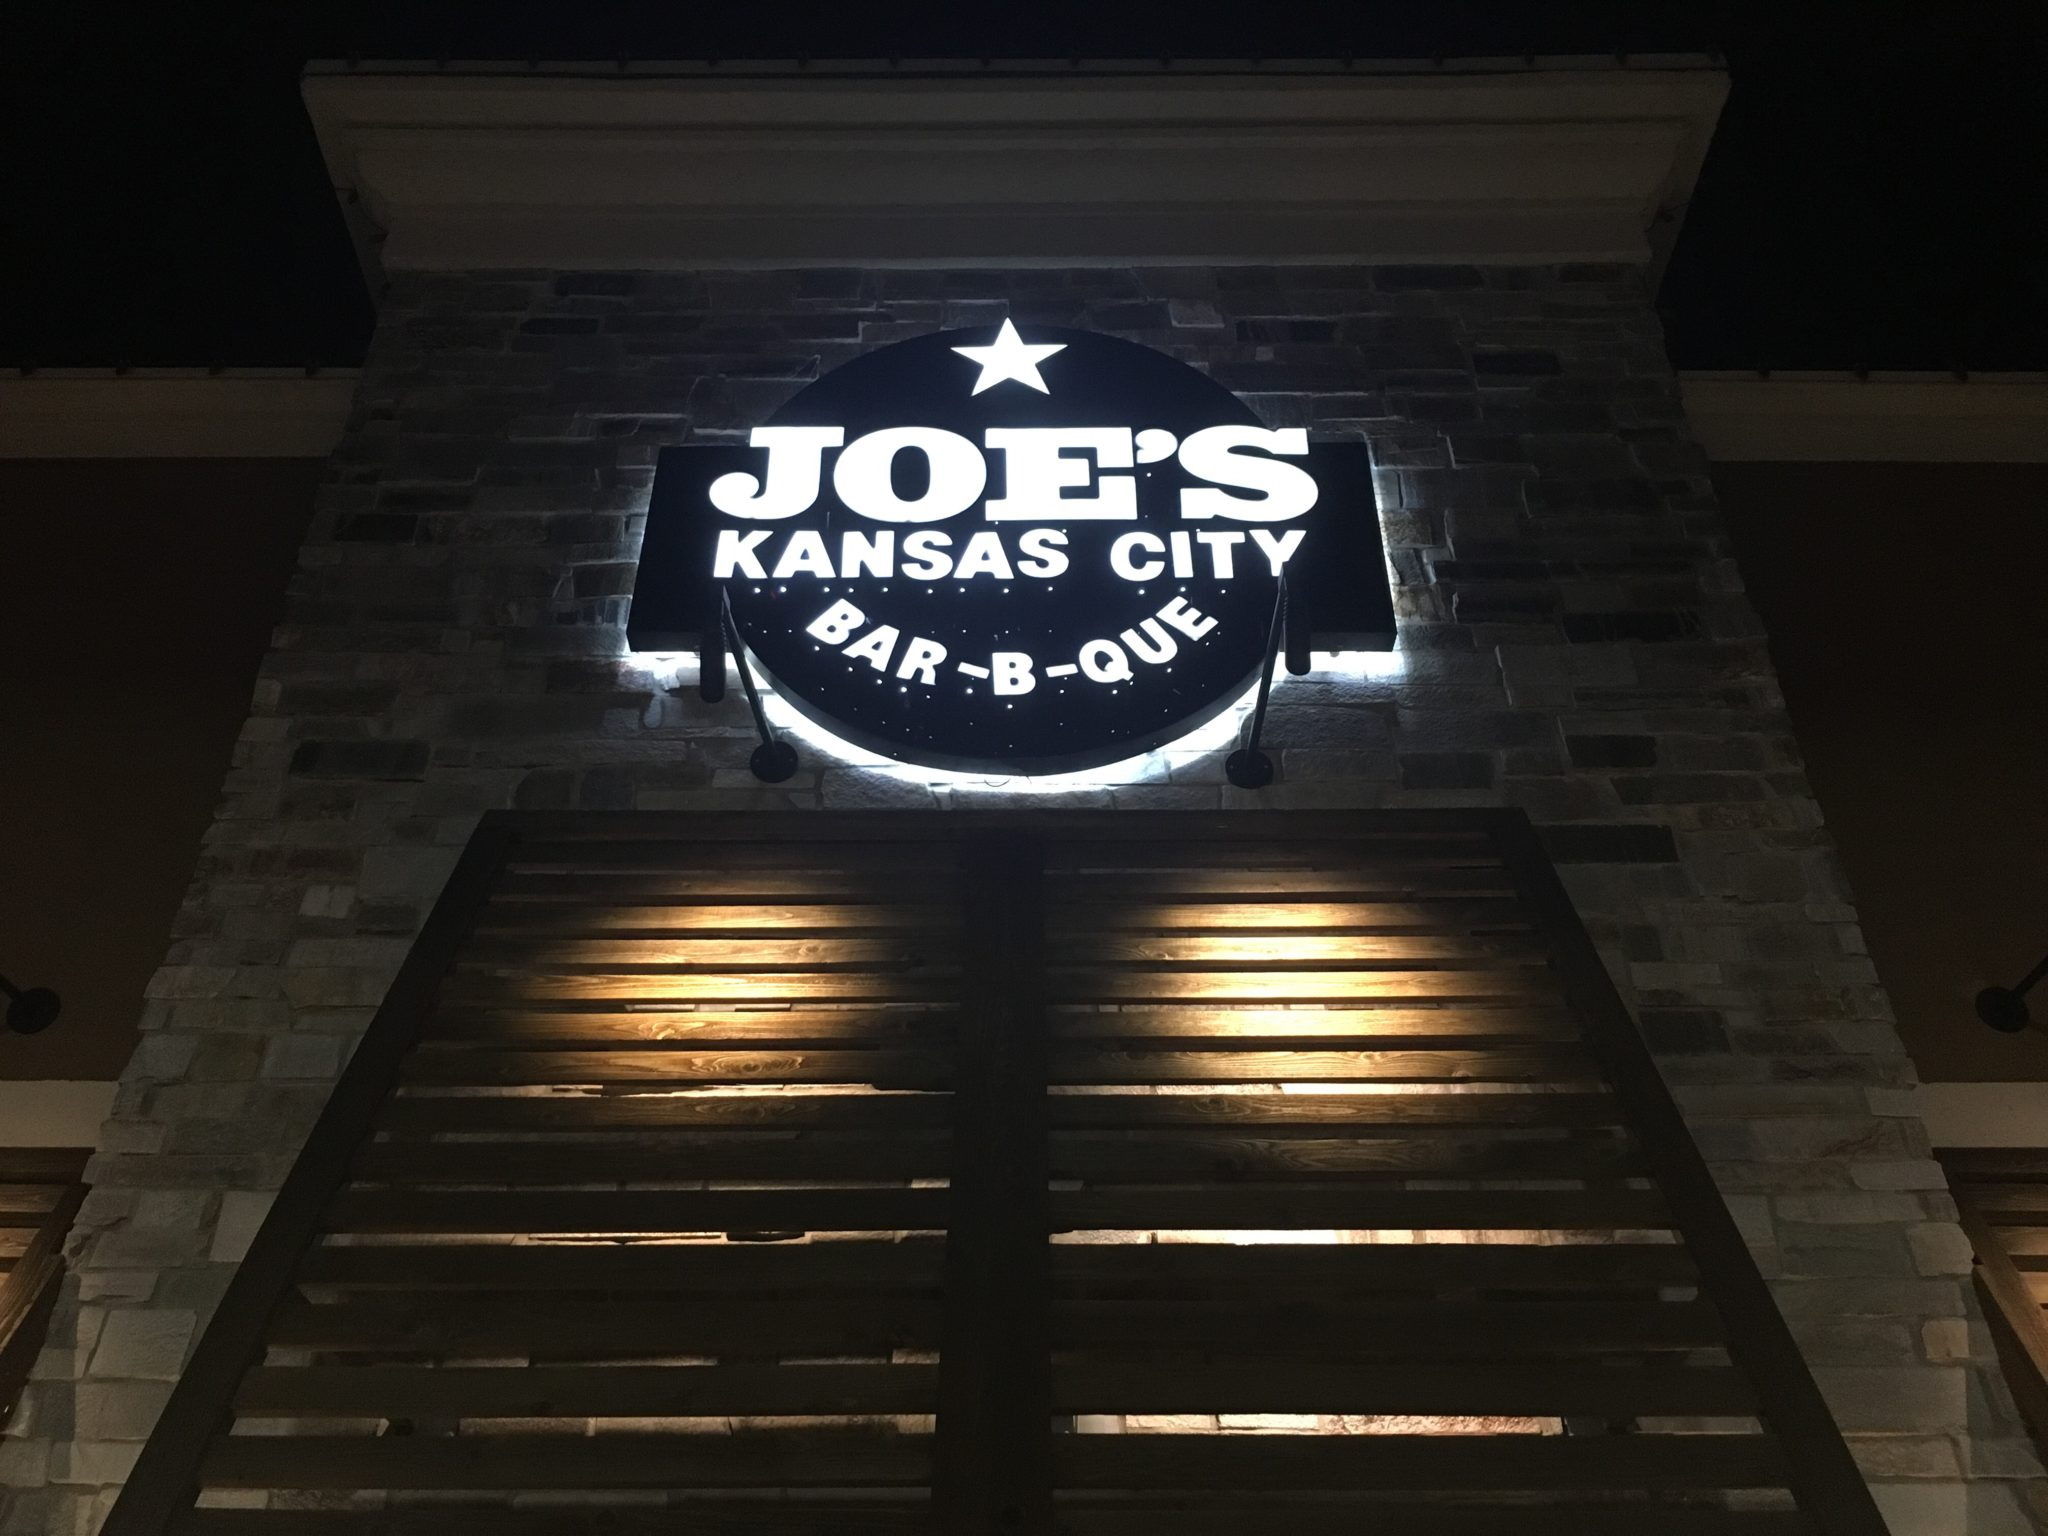 2016 Road Trip – Joe's KC Bar-B-Que